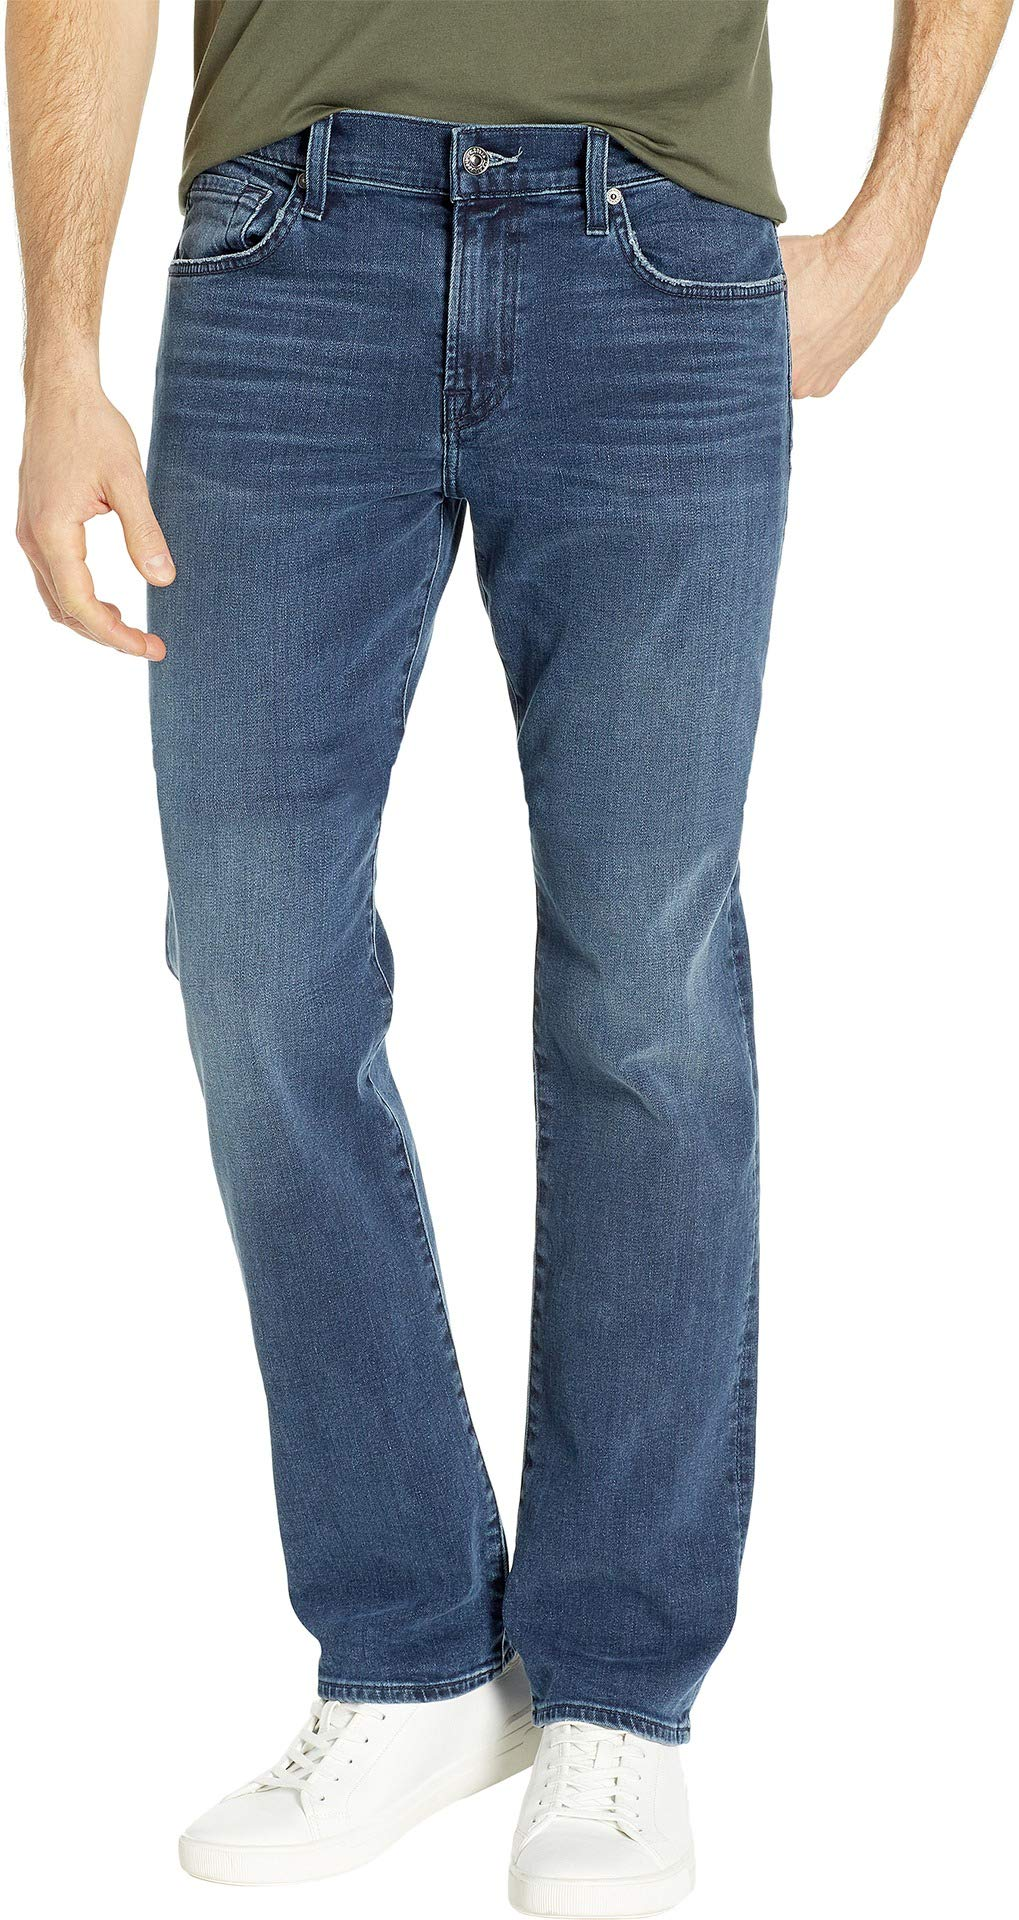 7 For All Mankind Men's Slimmy Slim Straight Luxe Performance/Invincible 29 34